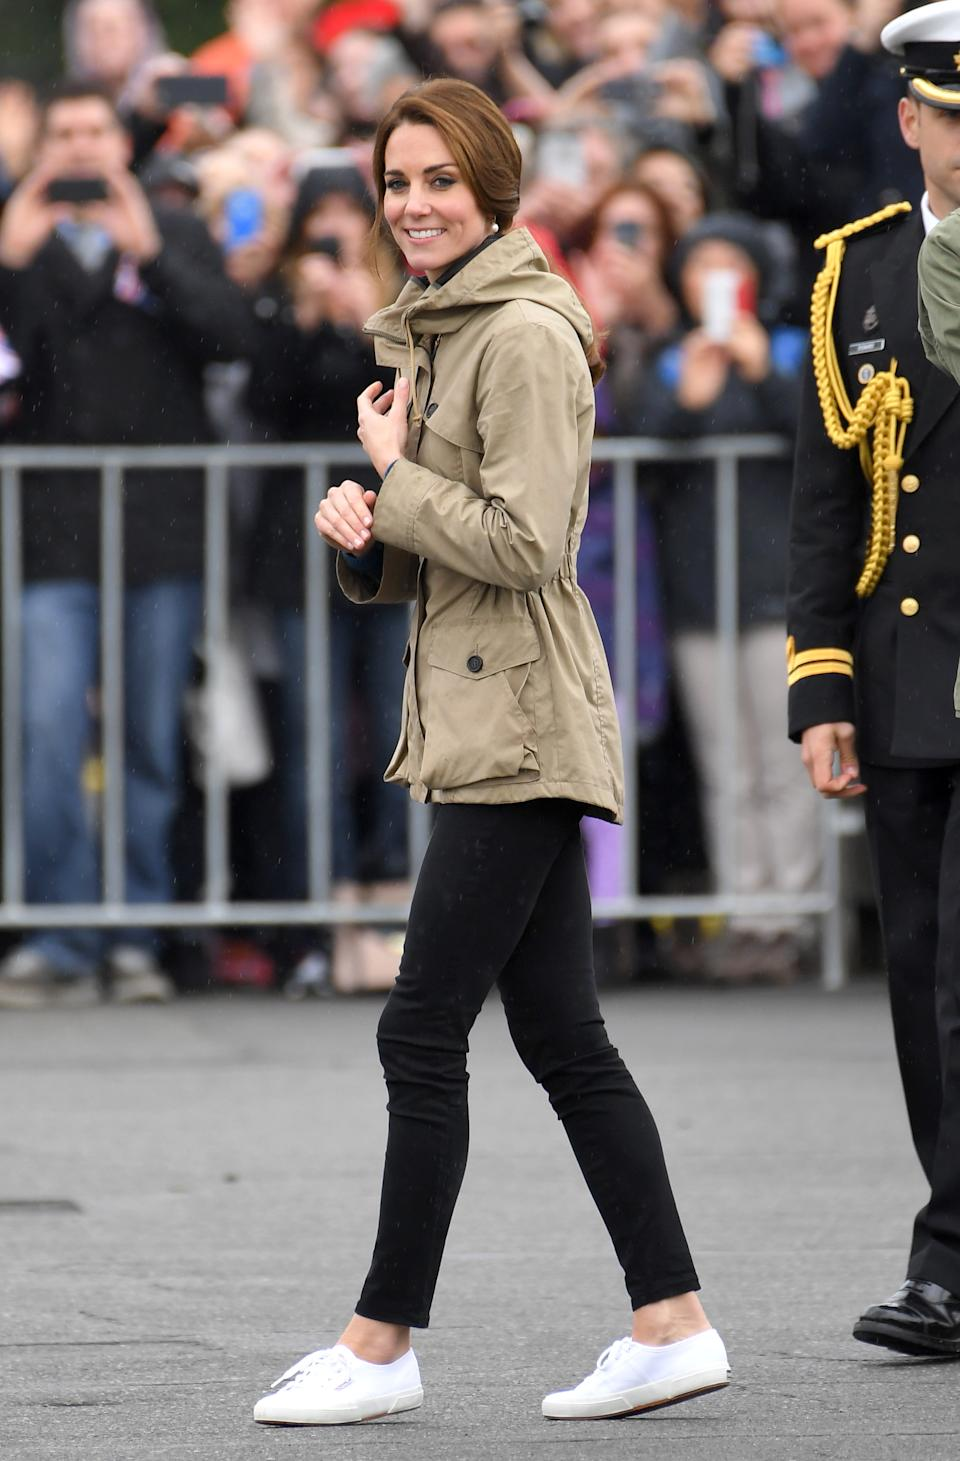 kate middleton wearing white superga sneakers, black skinny jeans, and a tan coloured jacket at an event